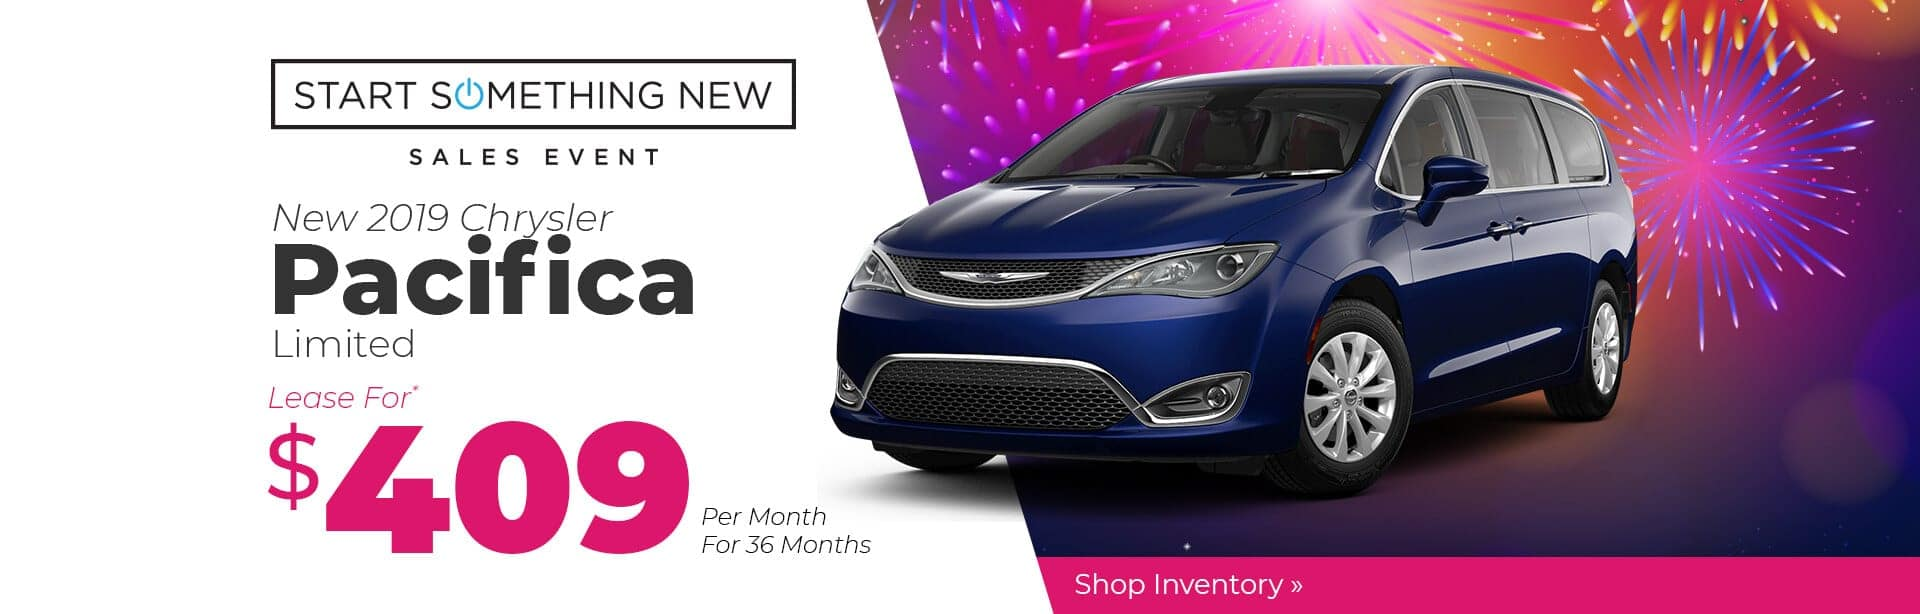 2019 Chrysler Pacifica Lease Special in Crawfordsville, Indiana.